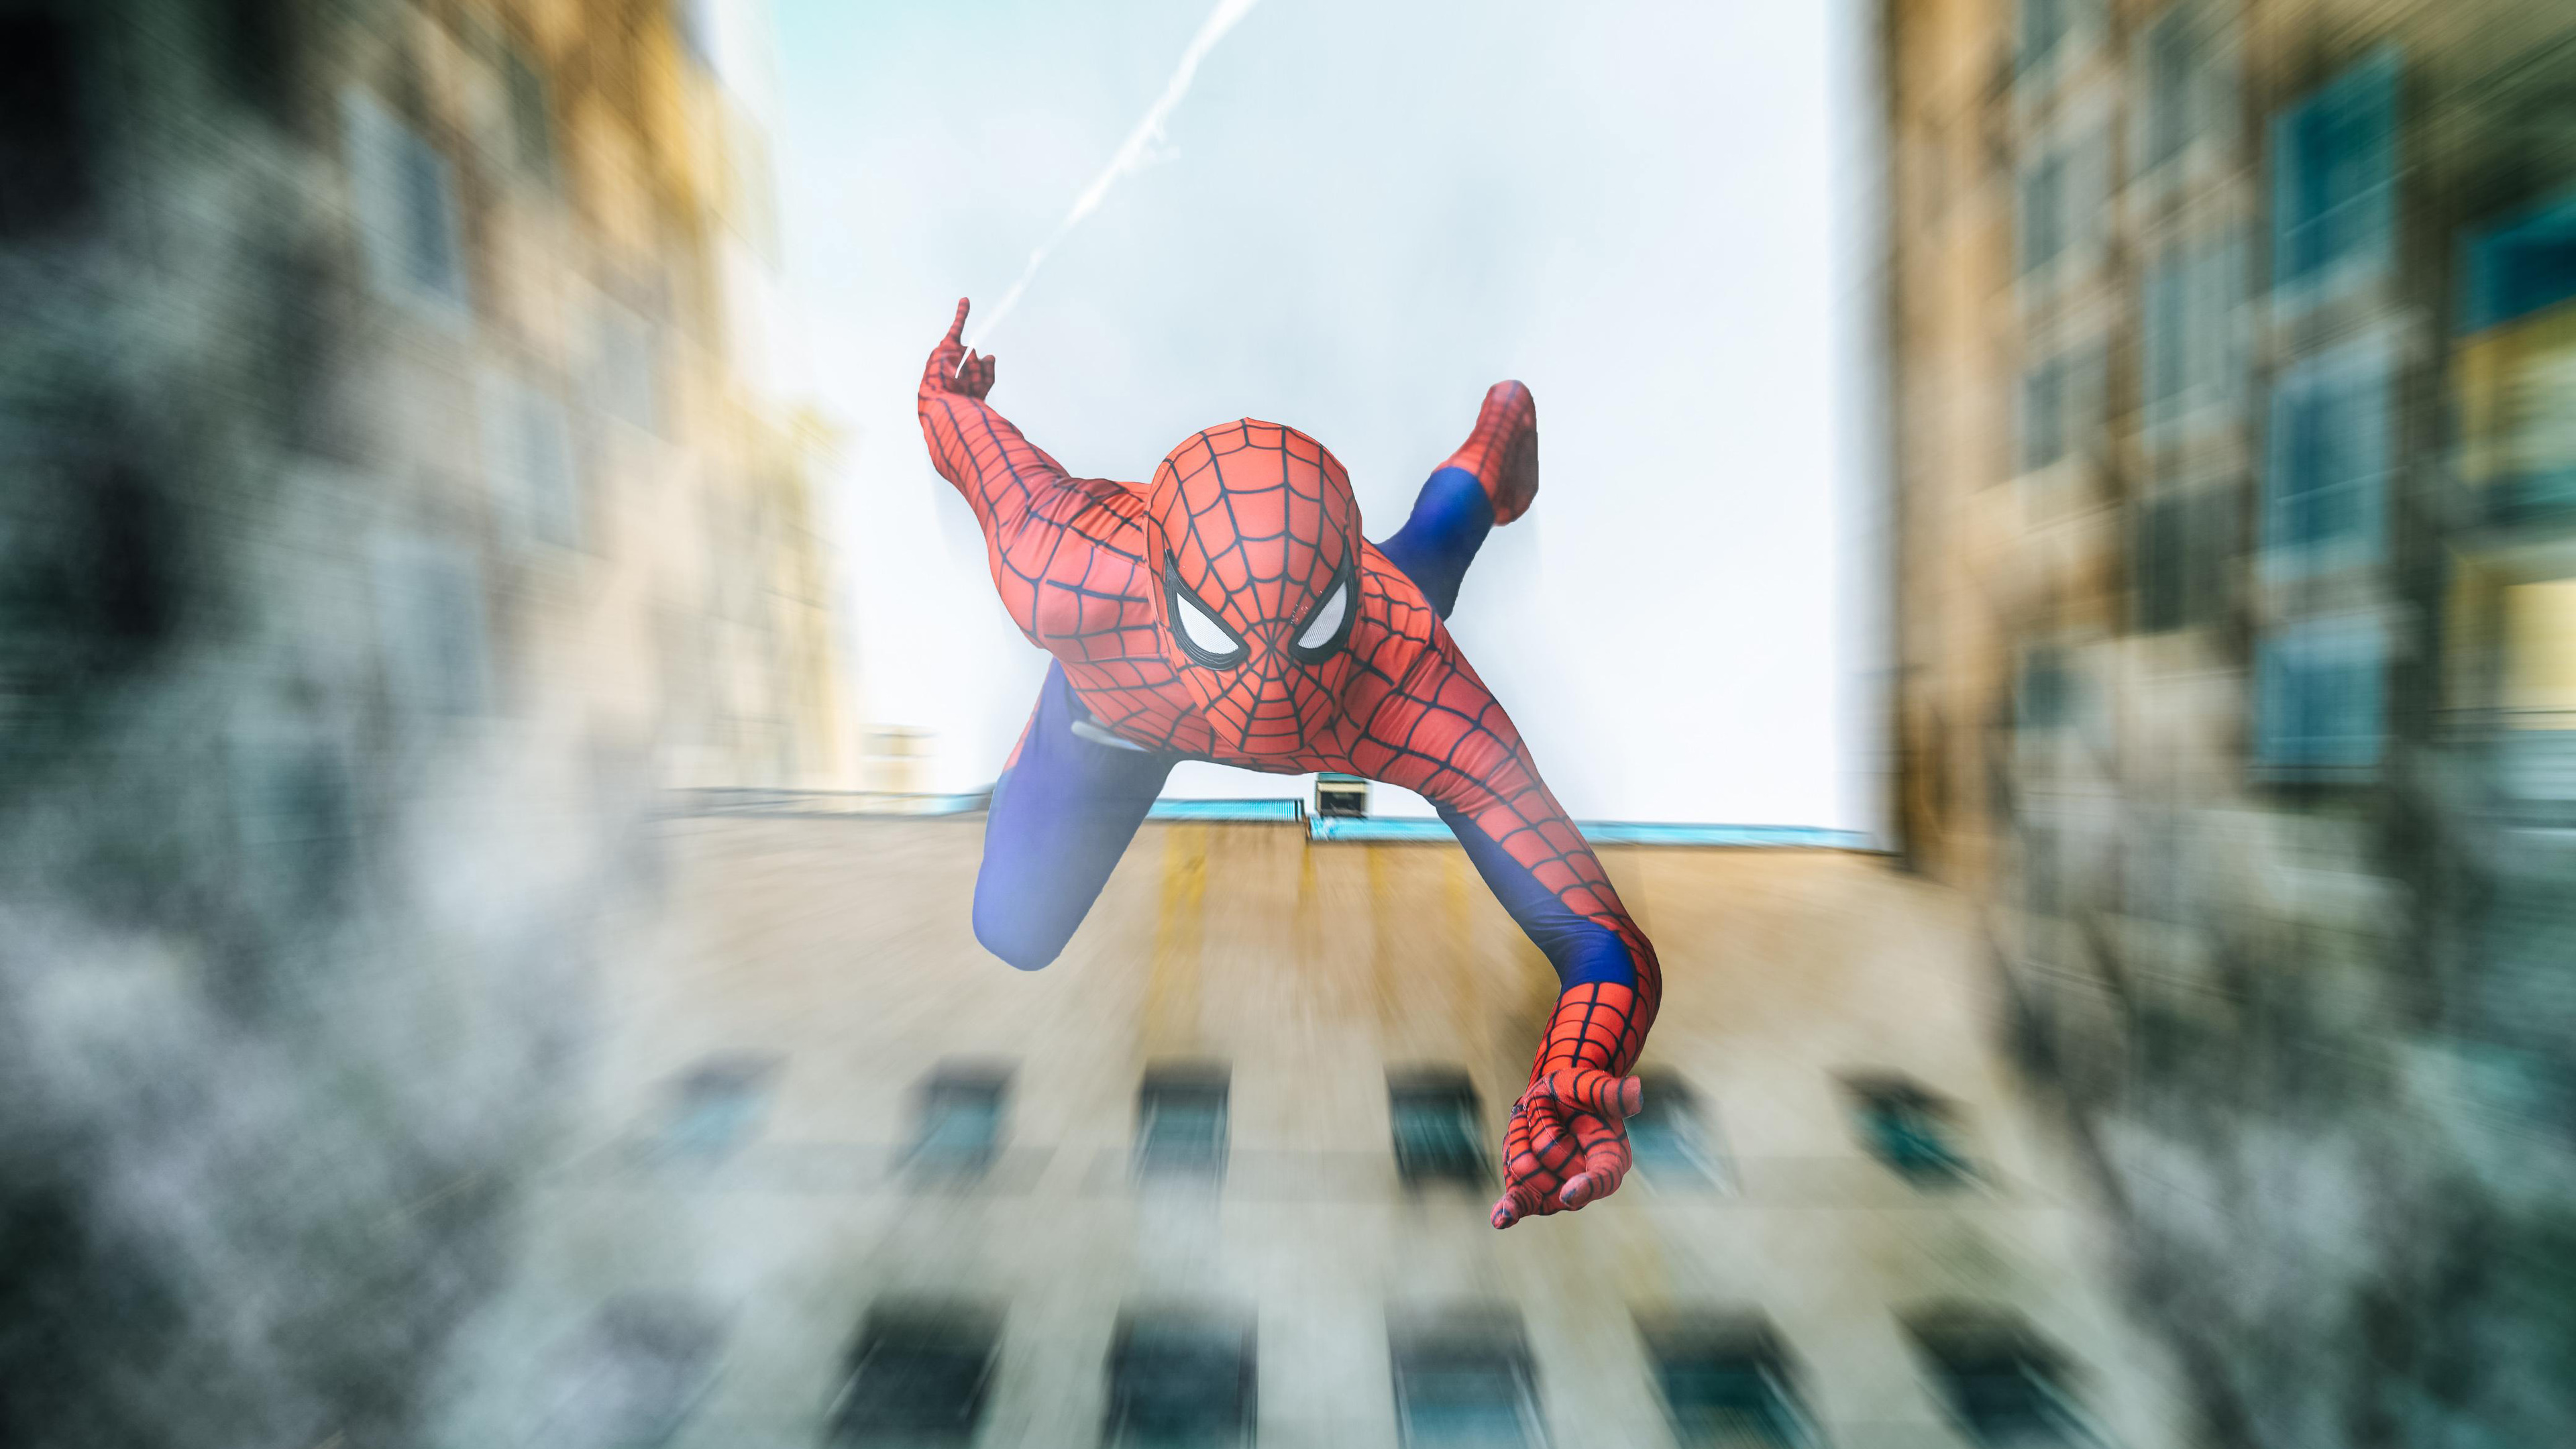 spiderman falling from building cosplay 1536522740 - Spiderman Falling From Building Cosplay - superheroes wallpapers, spiderman wallpapers, hd-wallpapers, cosplay wallpapers, 4k-wallpapers